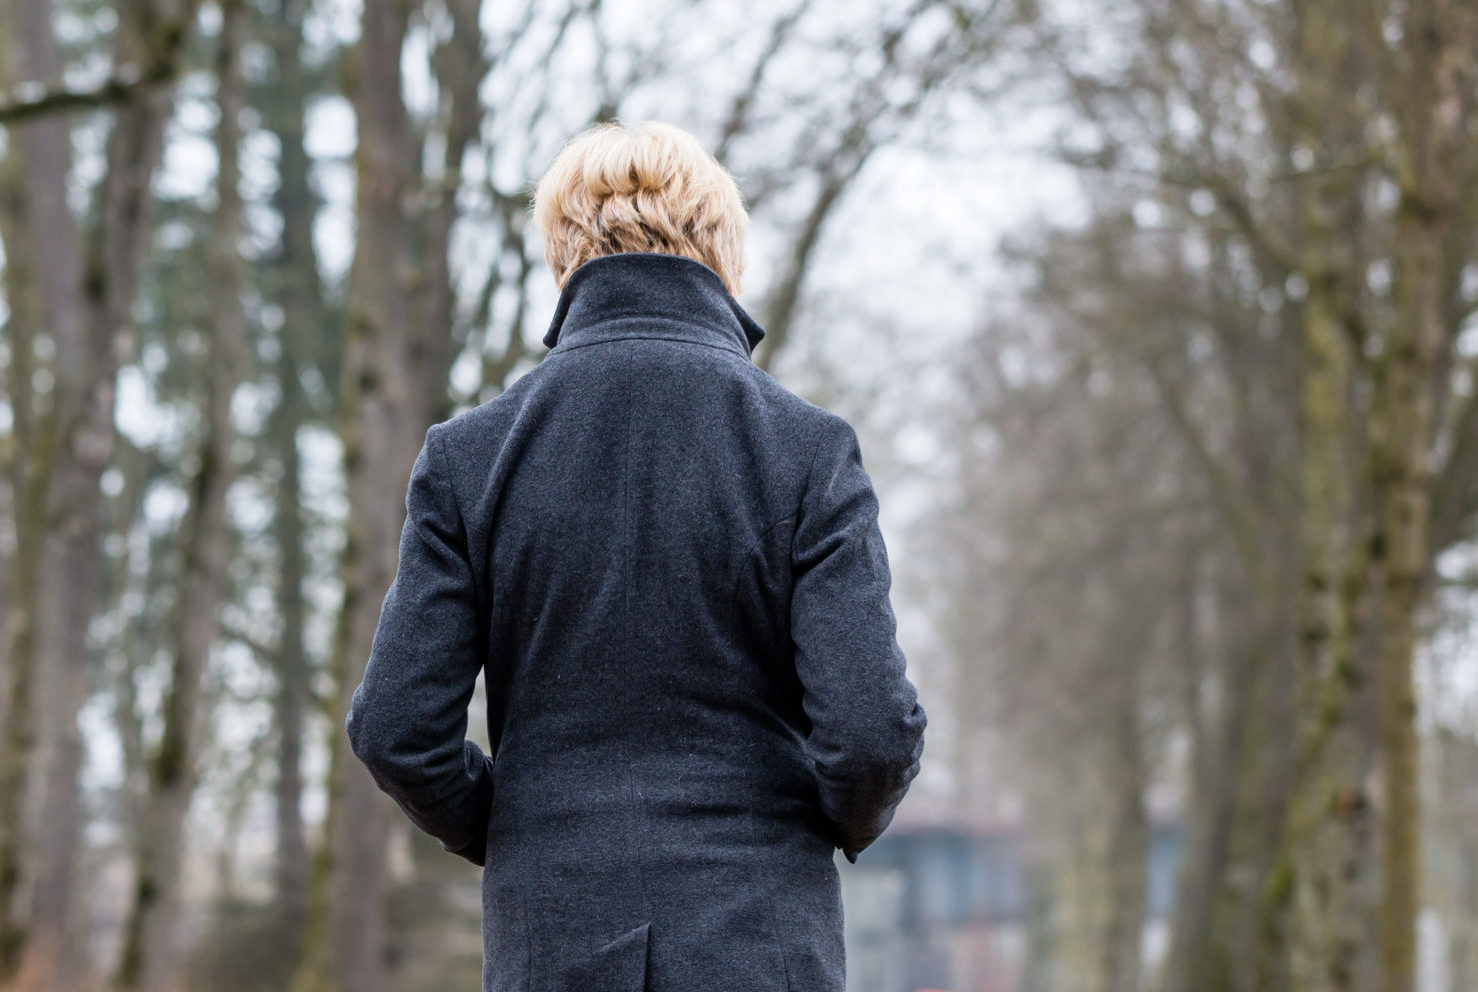 I'll Never Be the Same: One Woman's Story of Pregnancy Loss